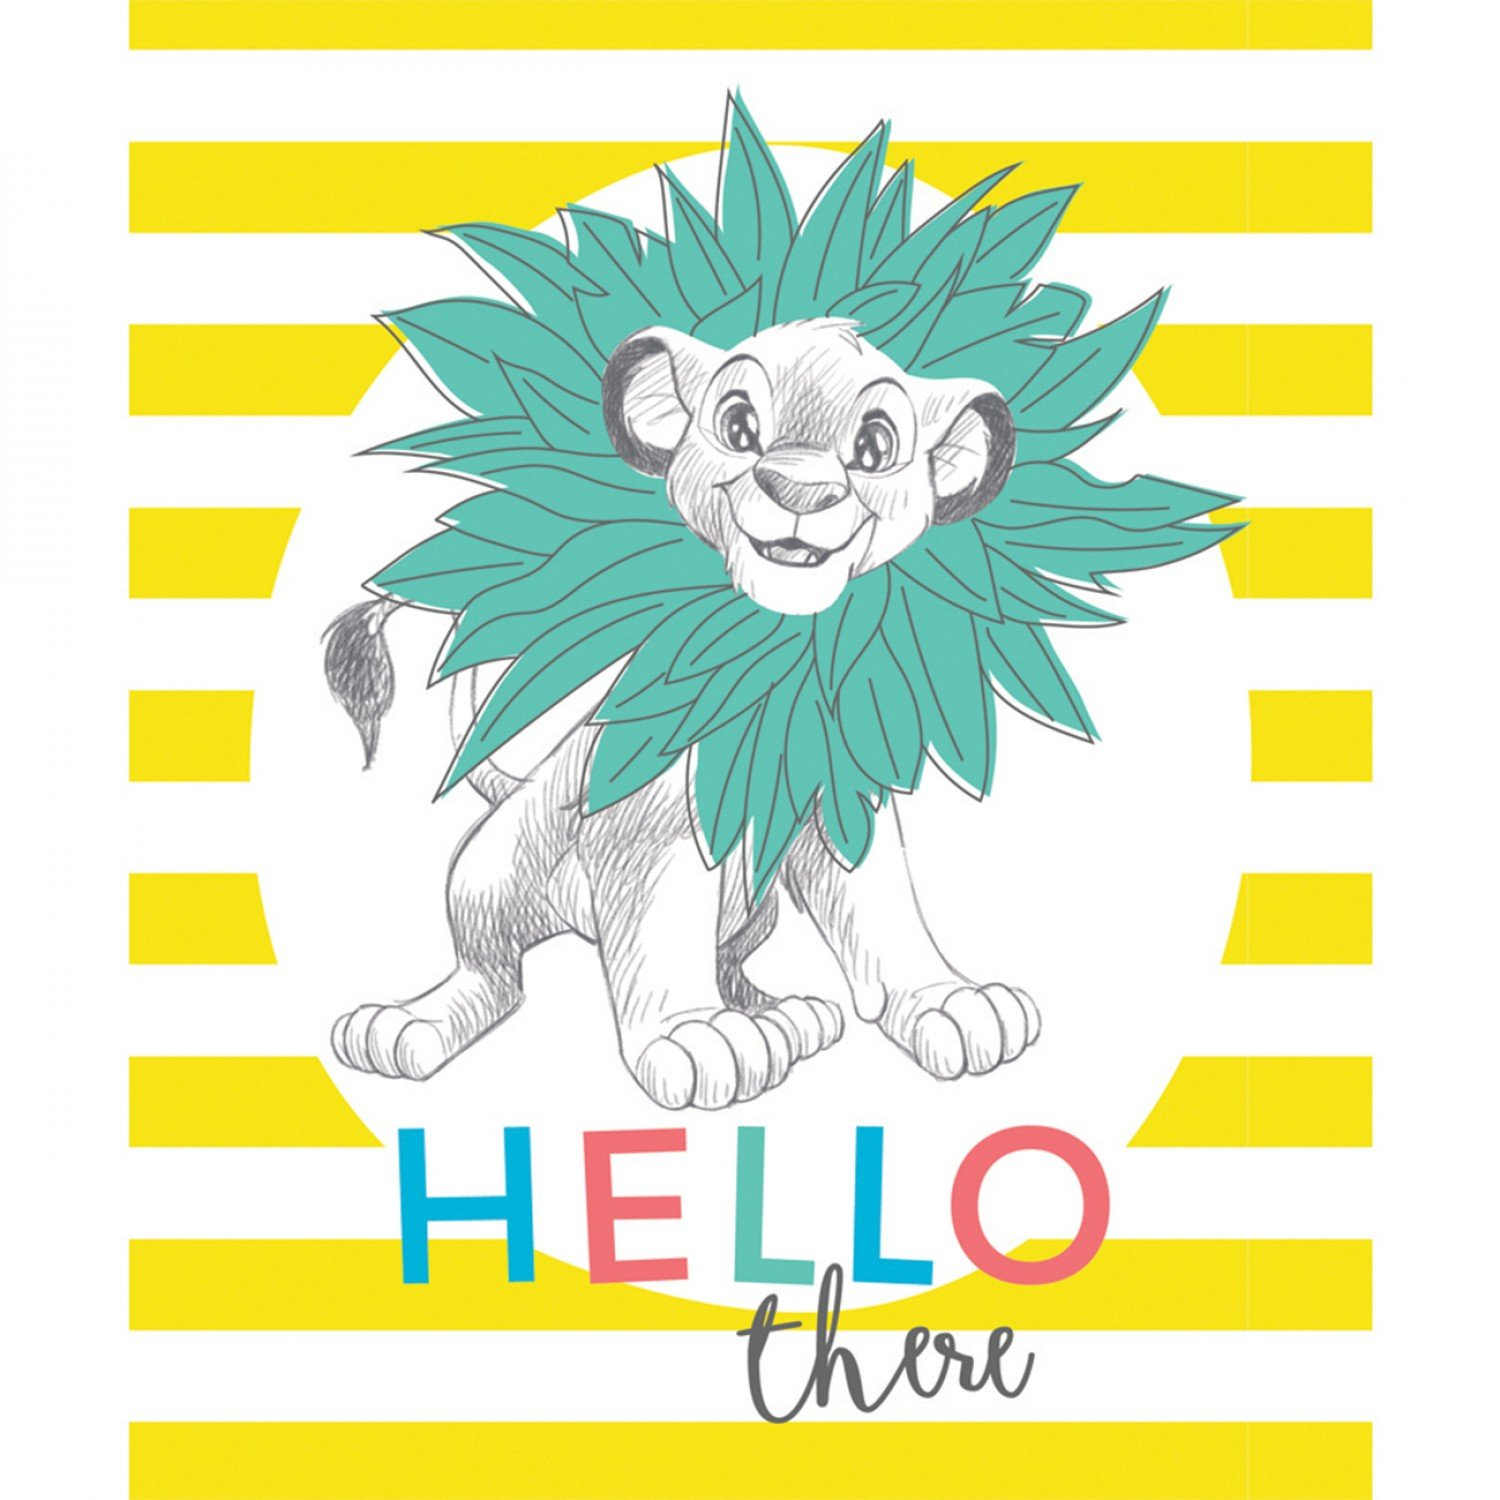 CF-Disney Dress to Impress Collection 85260302P-01 Yellow - Lion King's Simba Hello There Panel